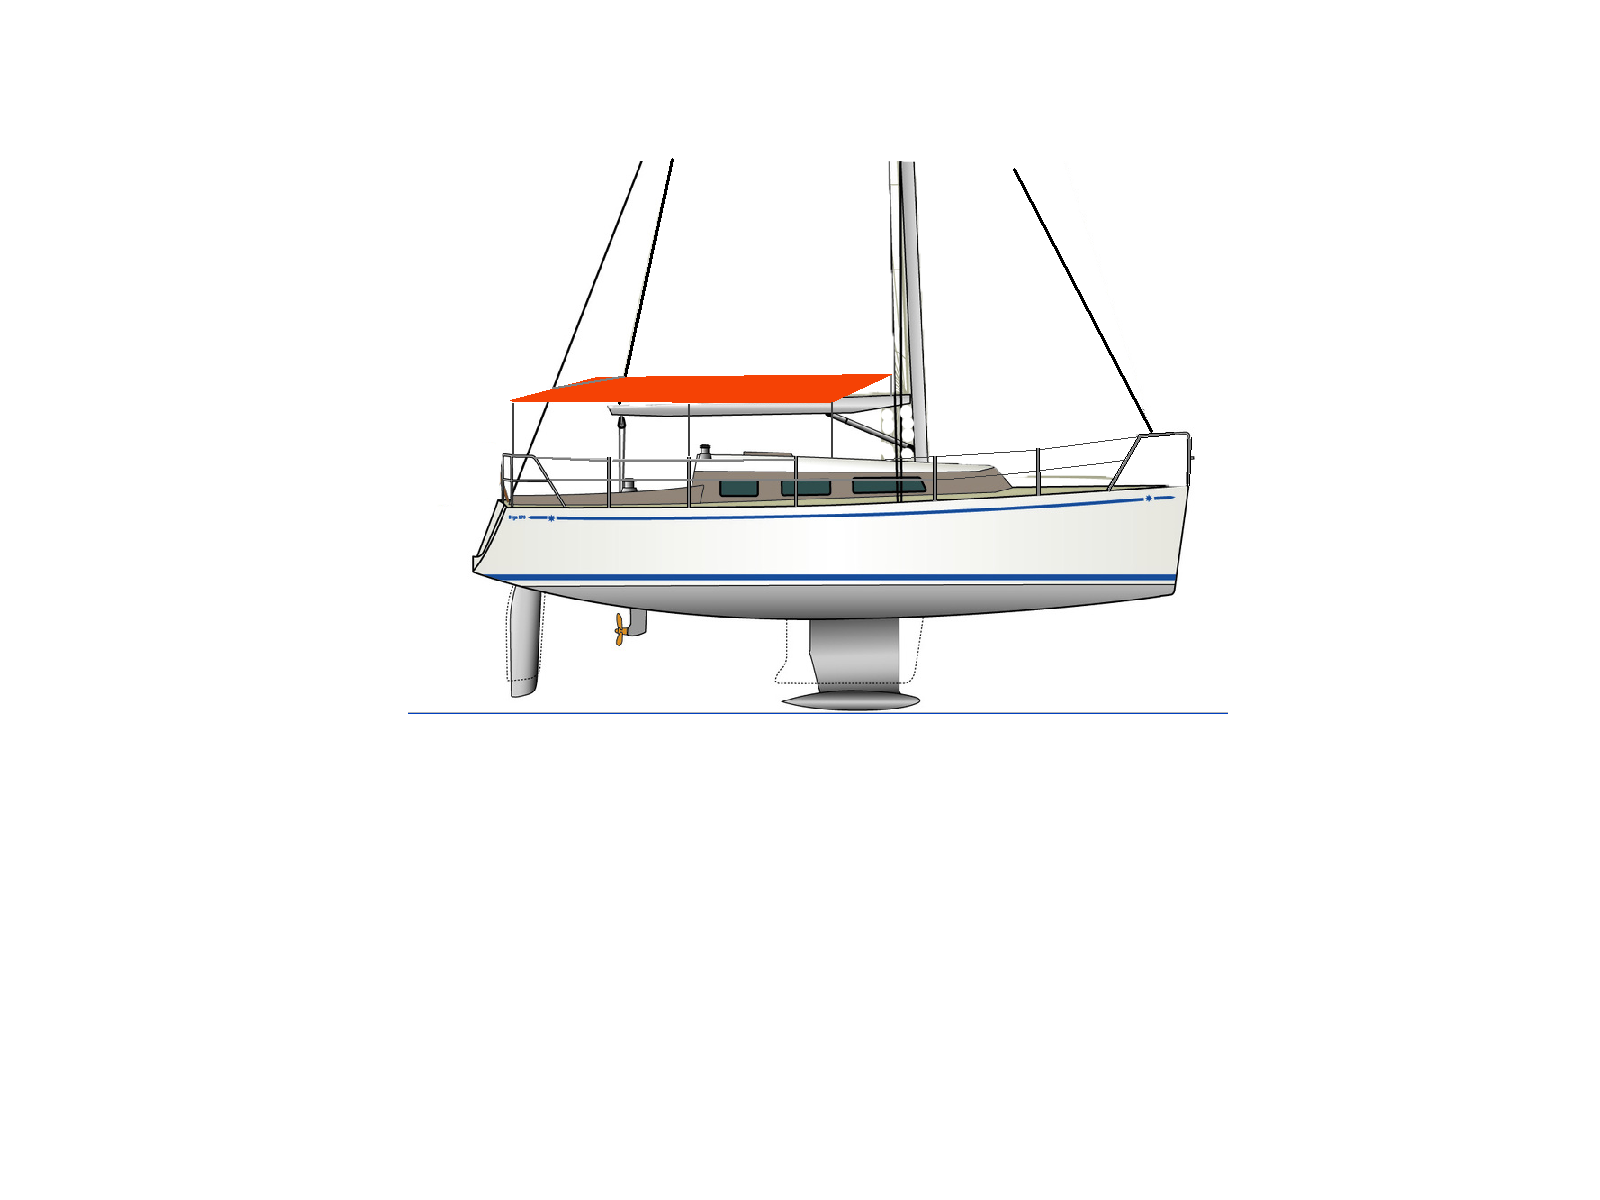 02 04 02 Typ L Segelboot Sonnendach mit Gest nge.PNG